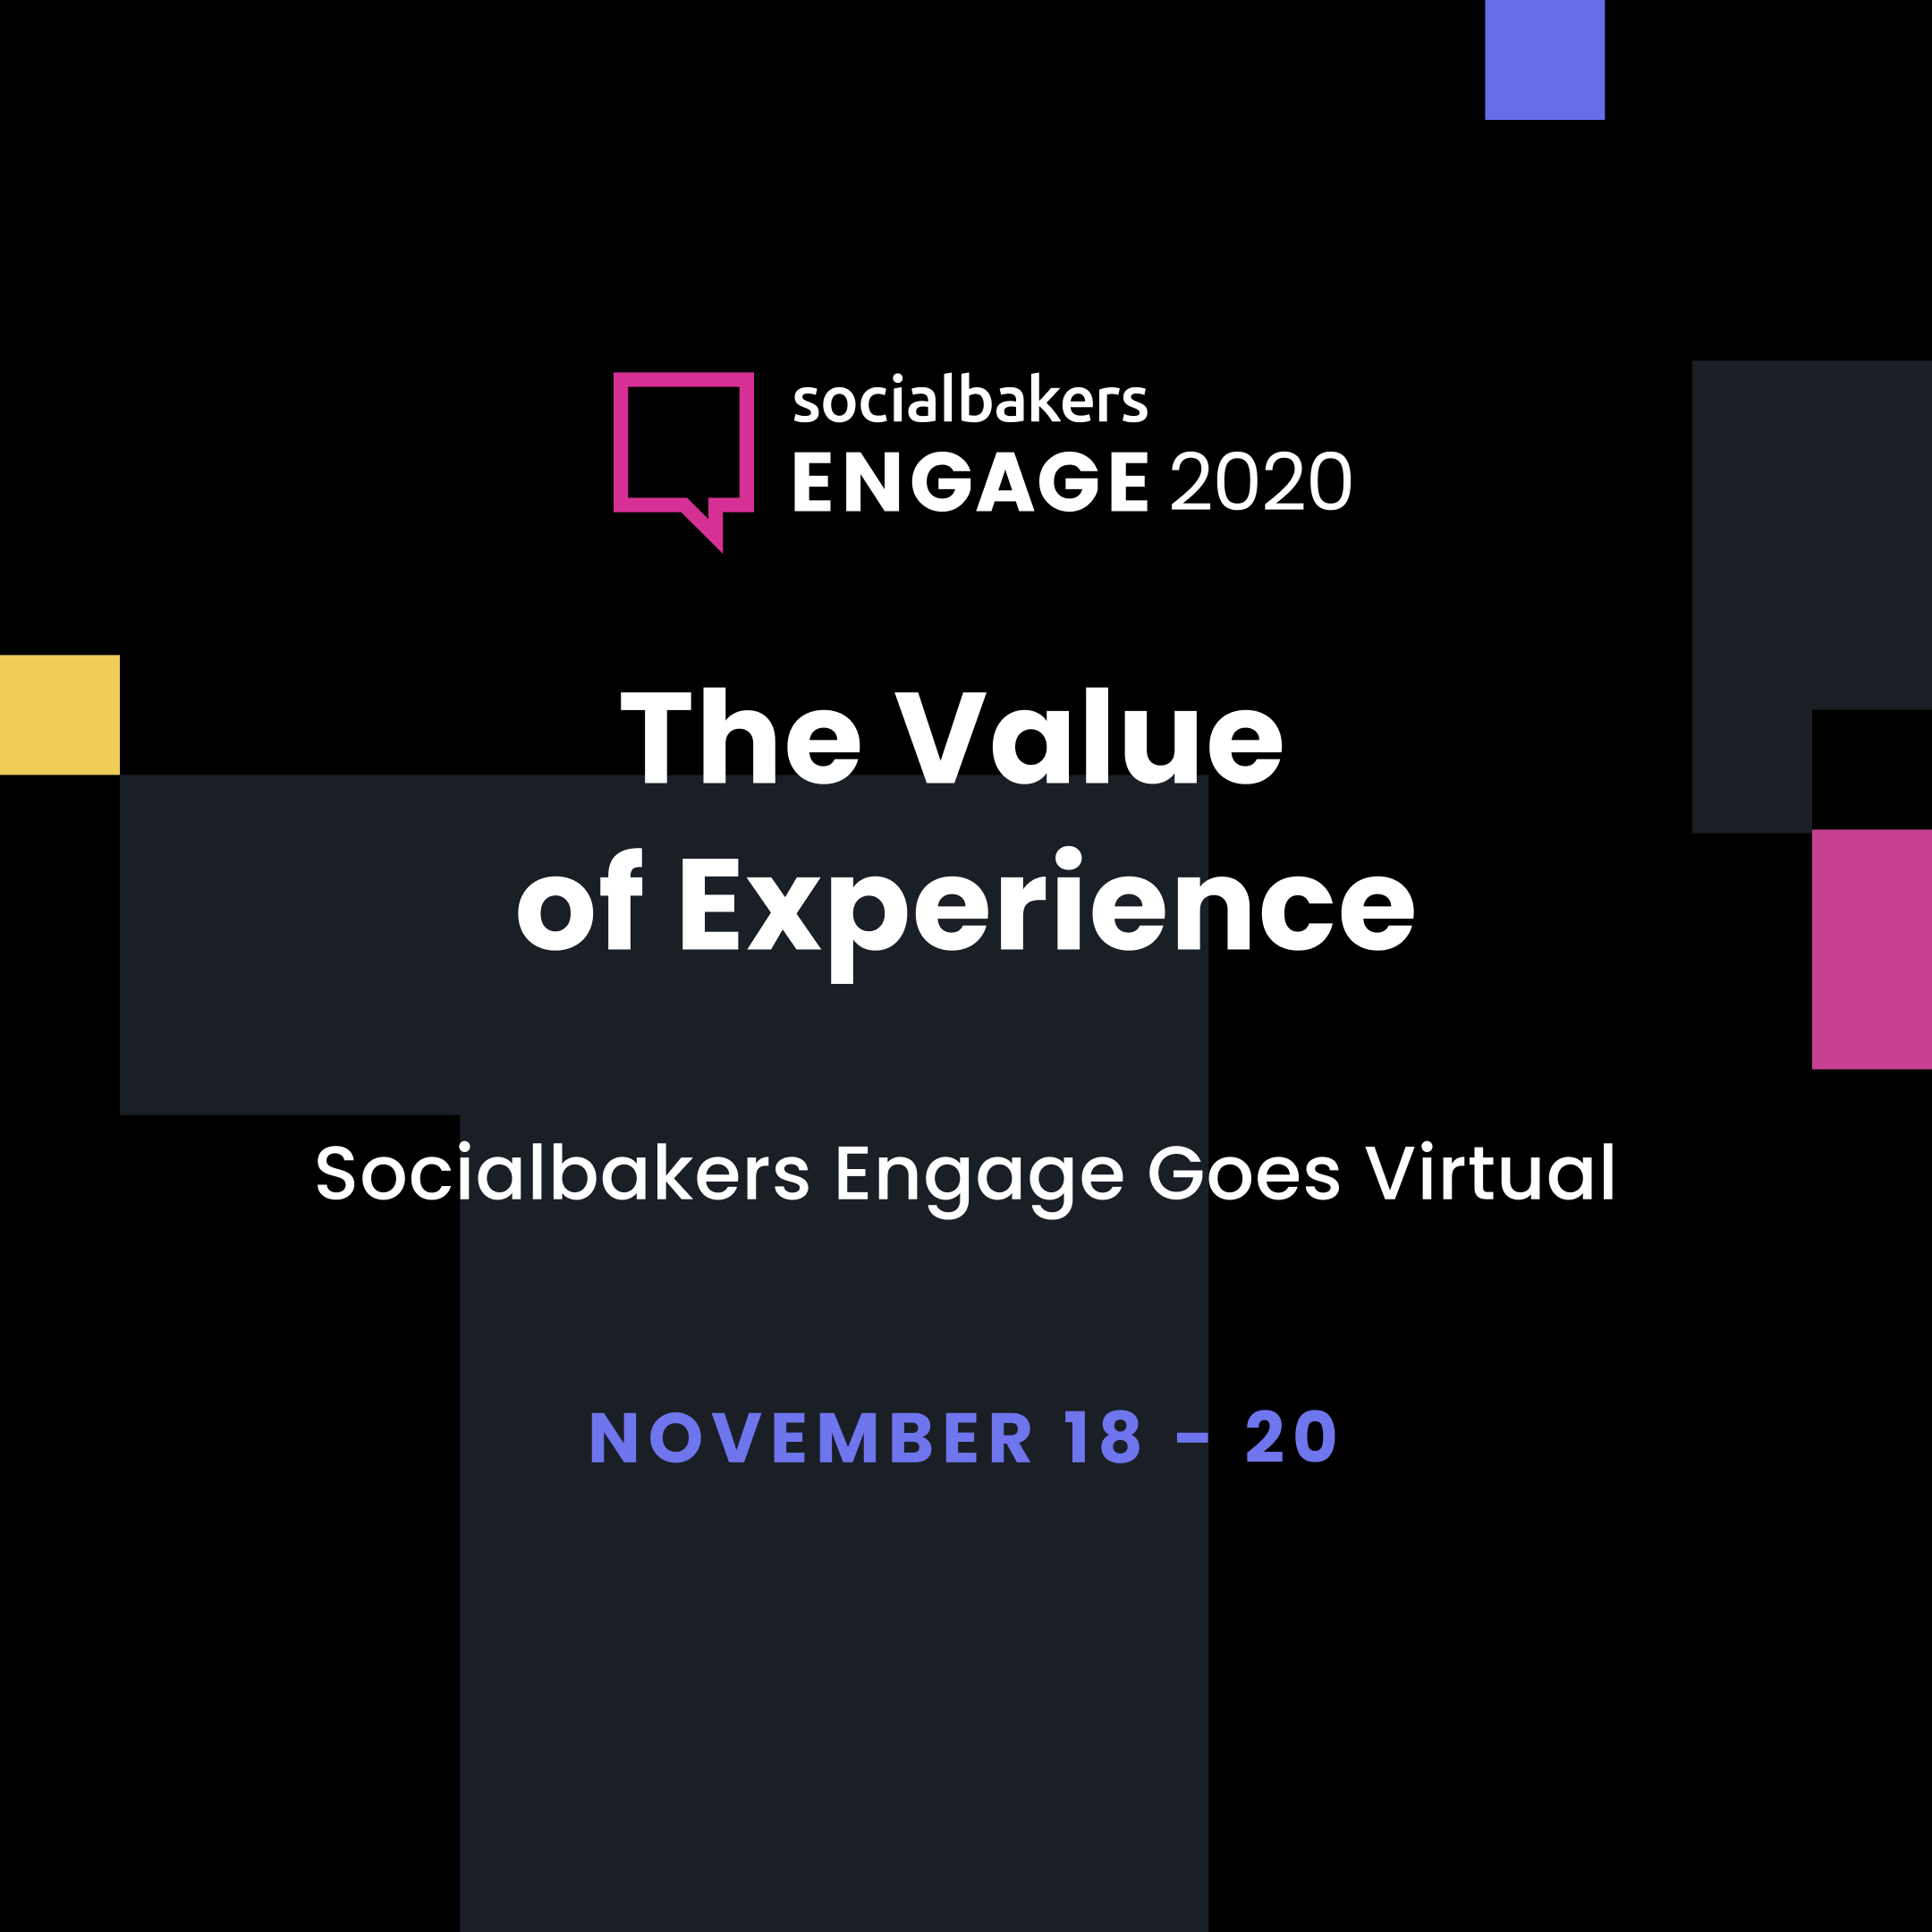 Socialbakers Brings Top Marketers Together at the Engage 2020 Conference: The Value of Experience